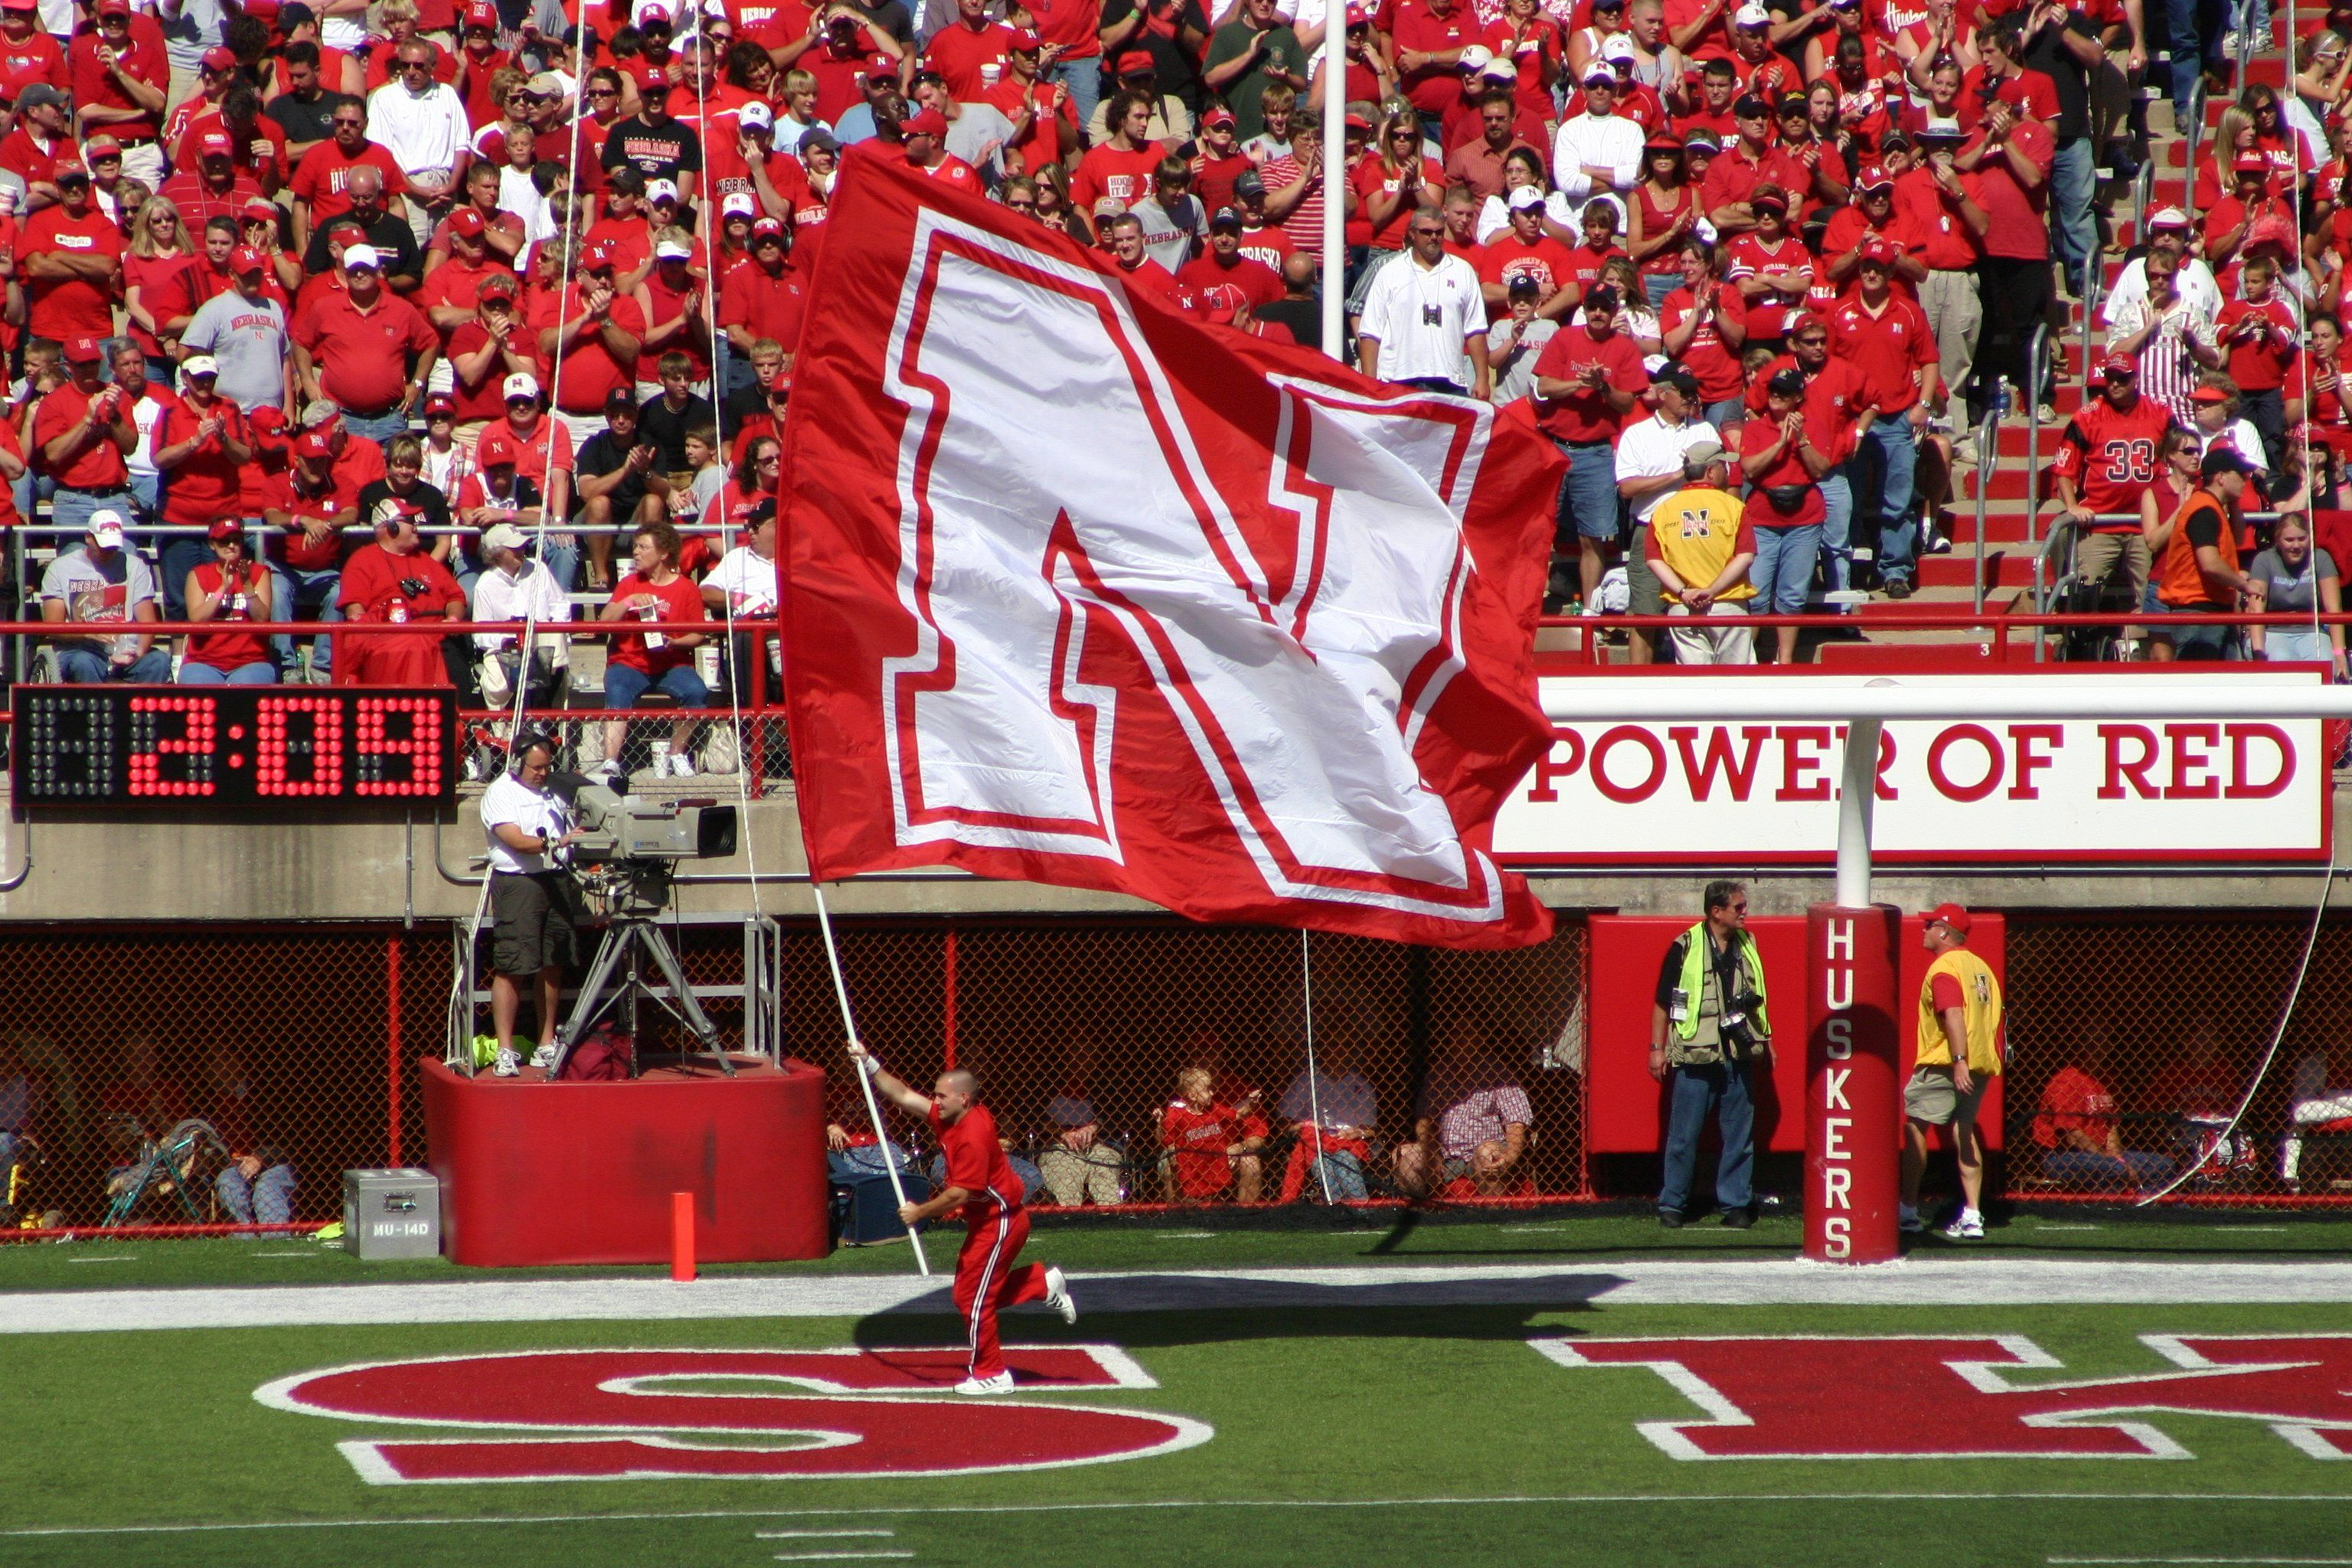 The Nebraska Cornhuskers football team represents the University of NebraskaLincoln Among the 128 Division IFBS teams Nebraska is one of ten football programs